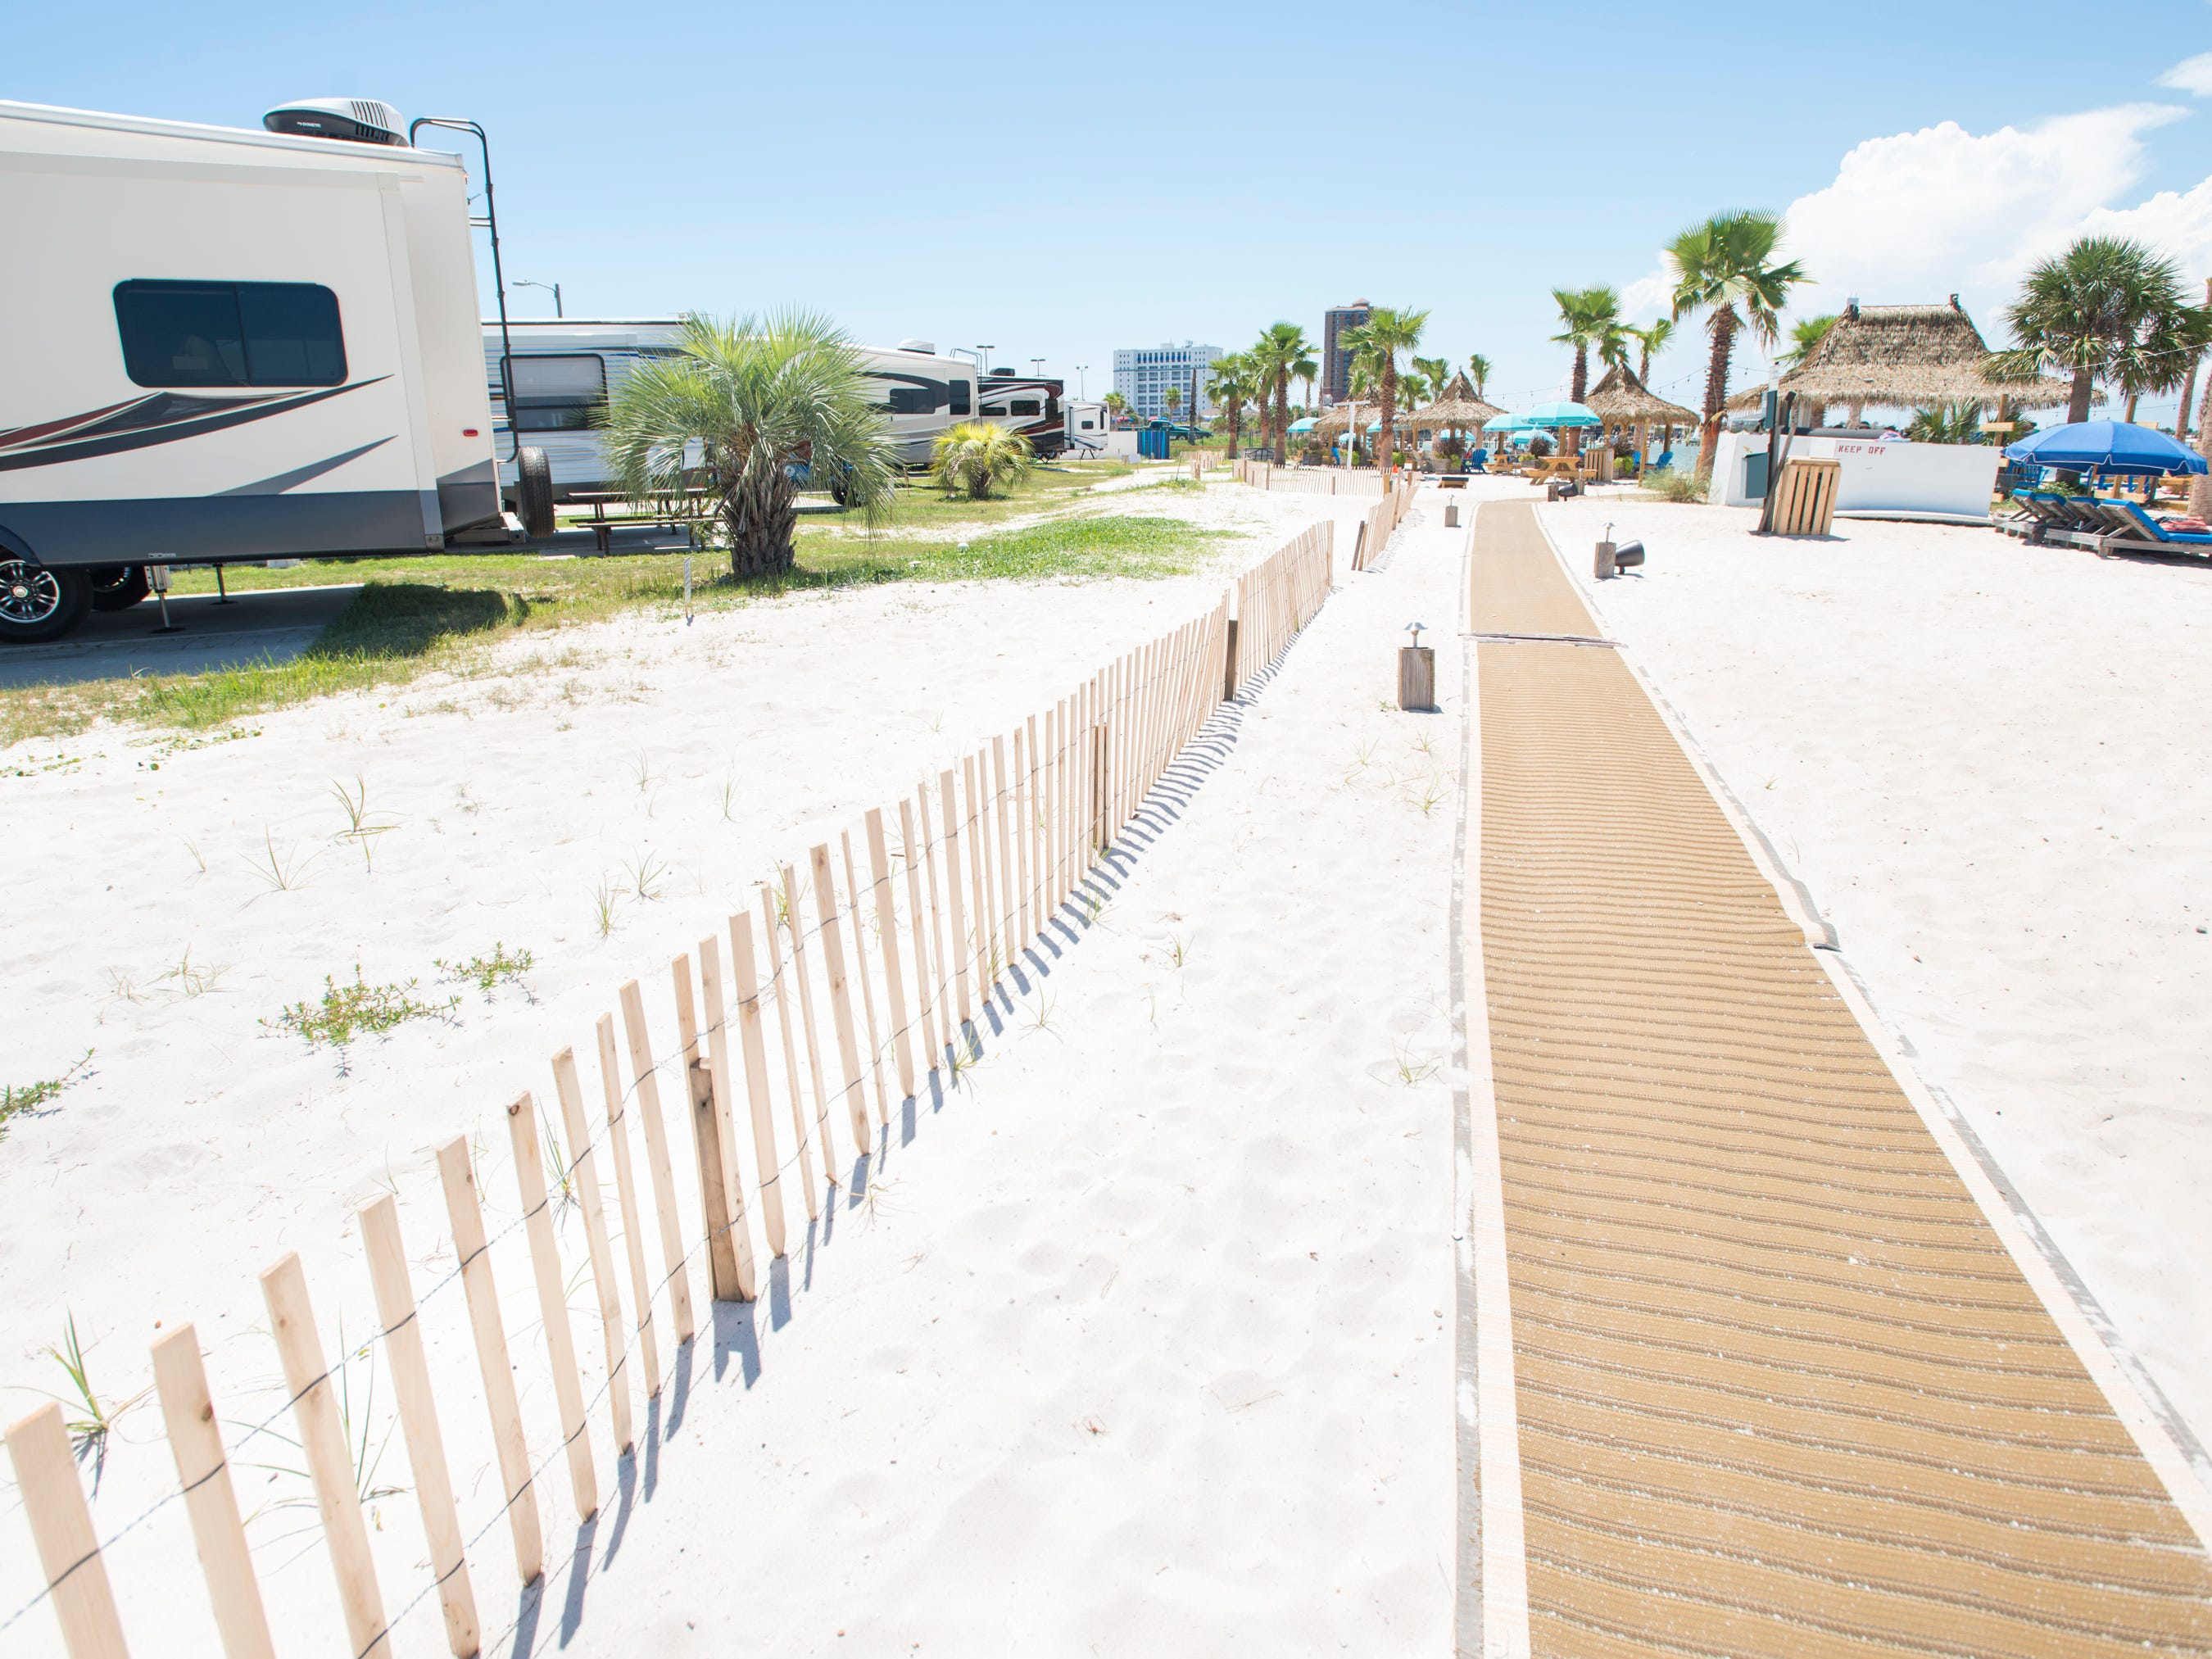 Pensacola Beach RV Resort in Pensacola on Tuesday, August 7, 2018.